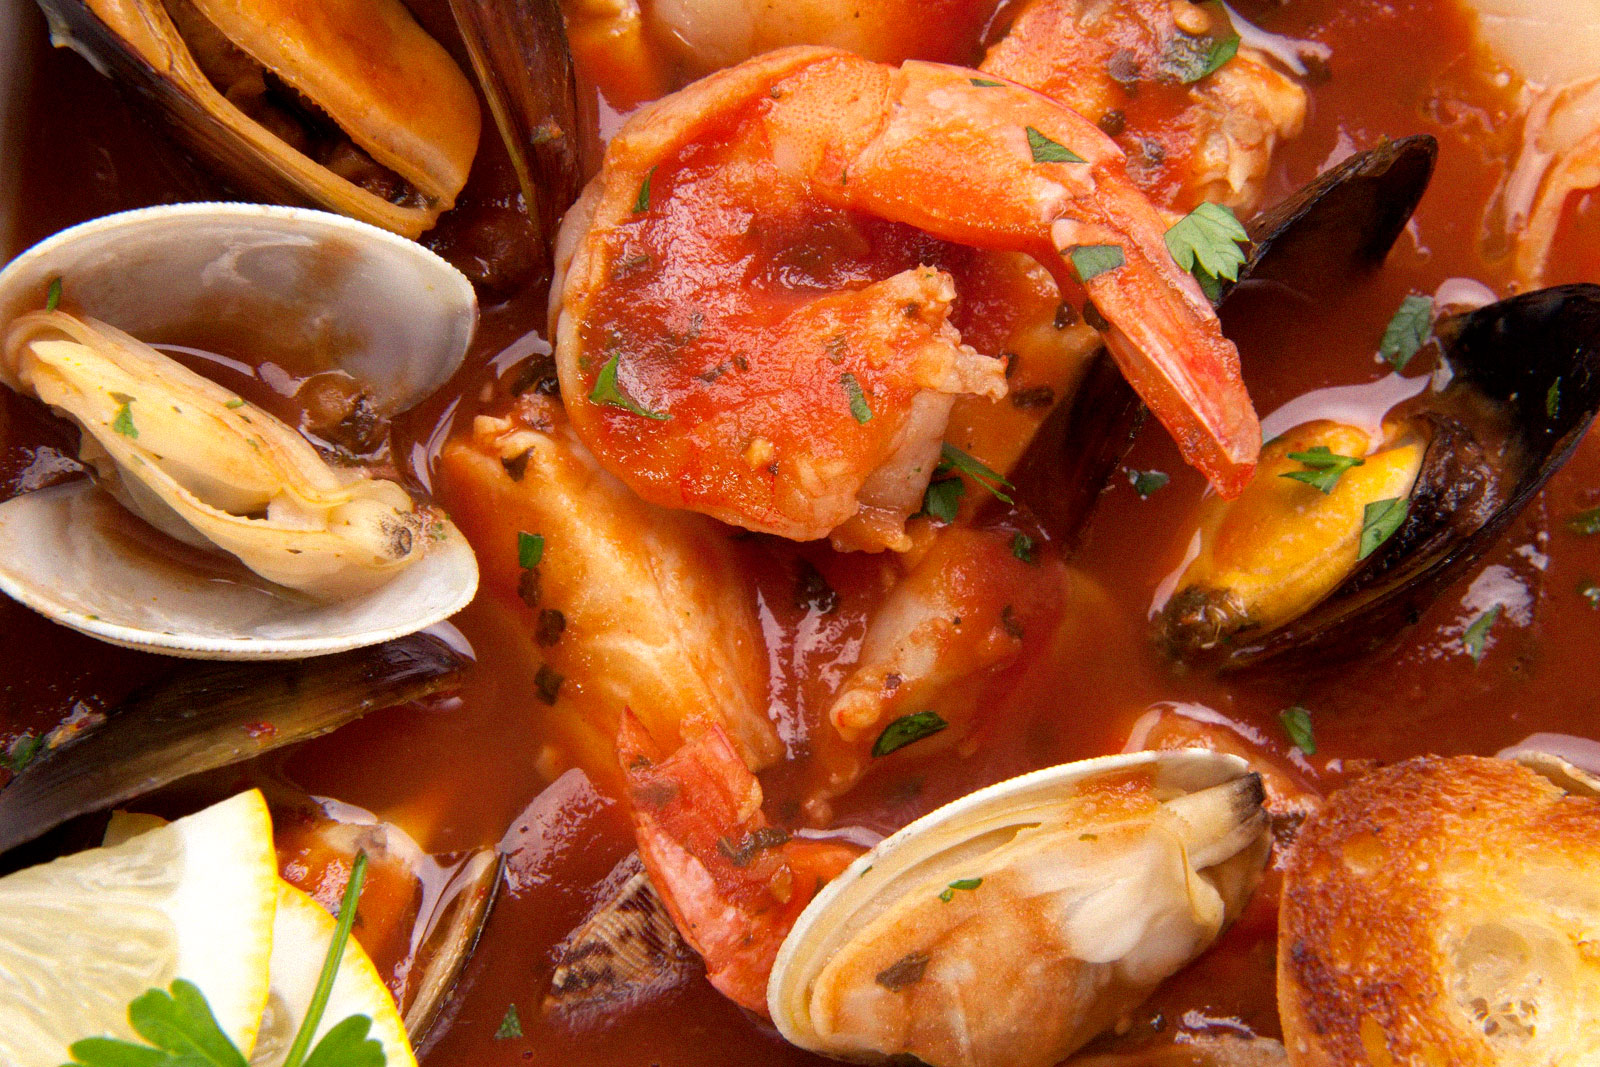 upclose photo of shrimp and clams in pasta sauce